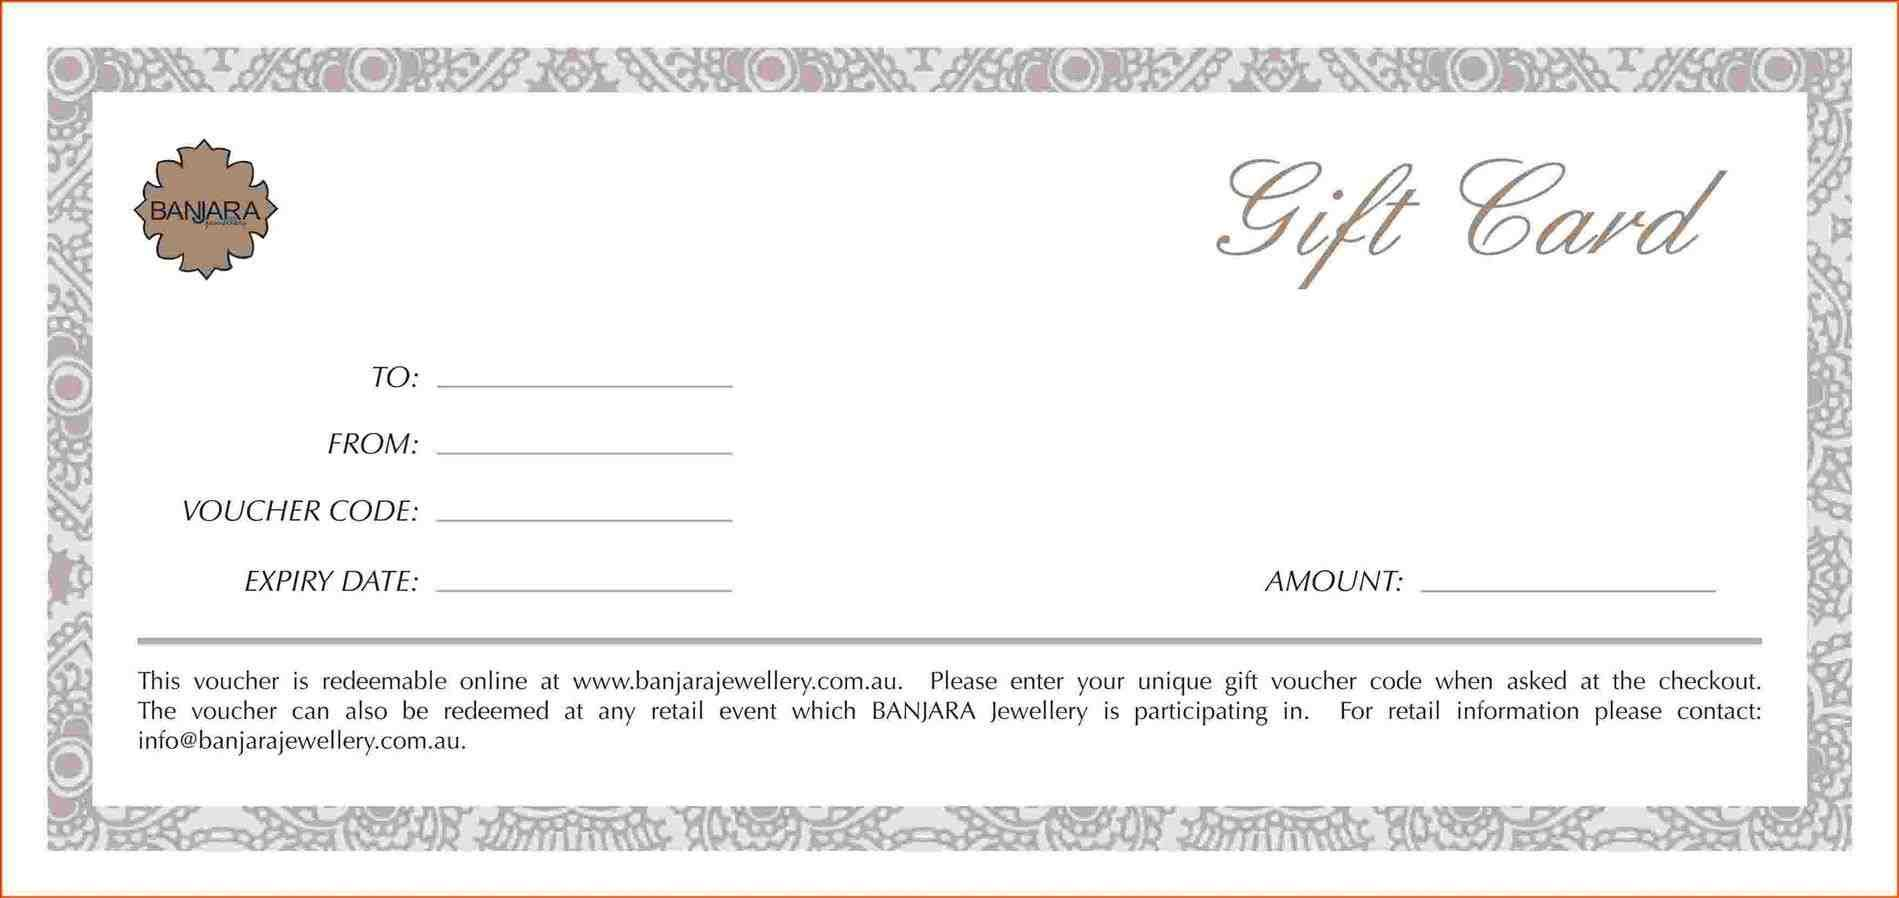 Download Clip Art Voucher Pdf Blank Certificates Gift Personal Gift Certificate Template Vouch Gift Card Template Gift Certificate Template Card Templates Free